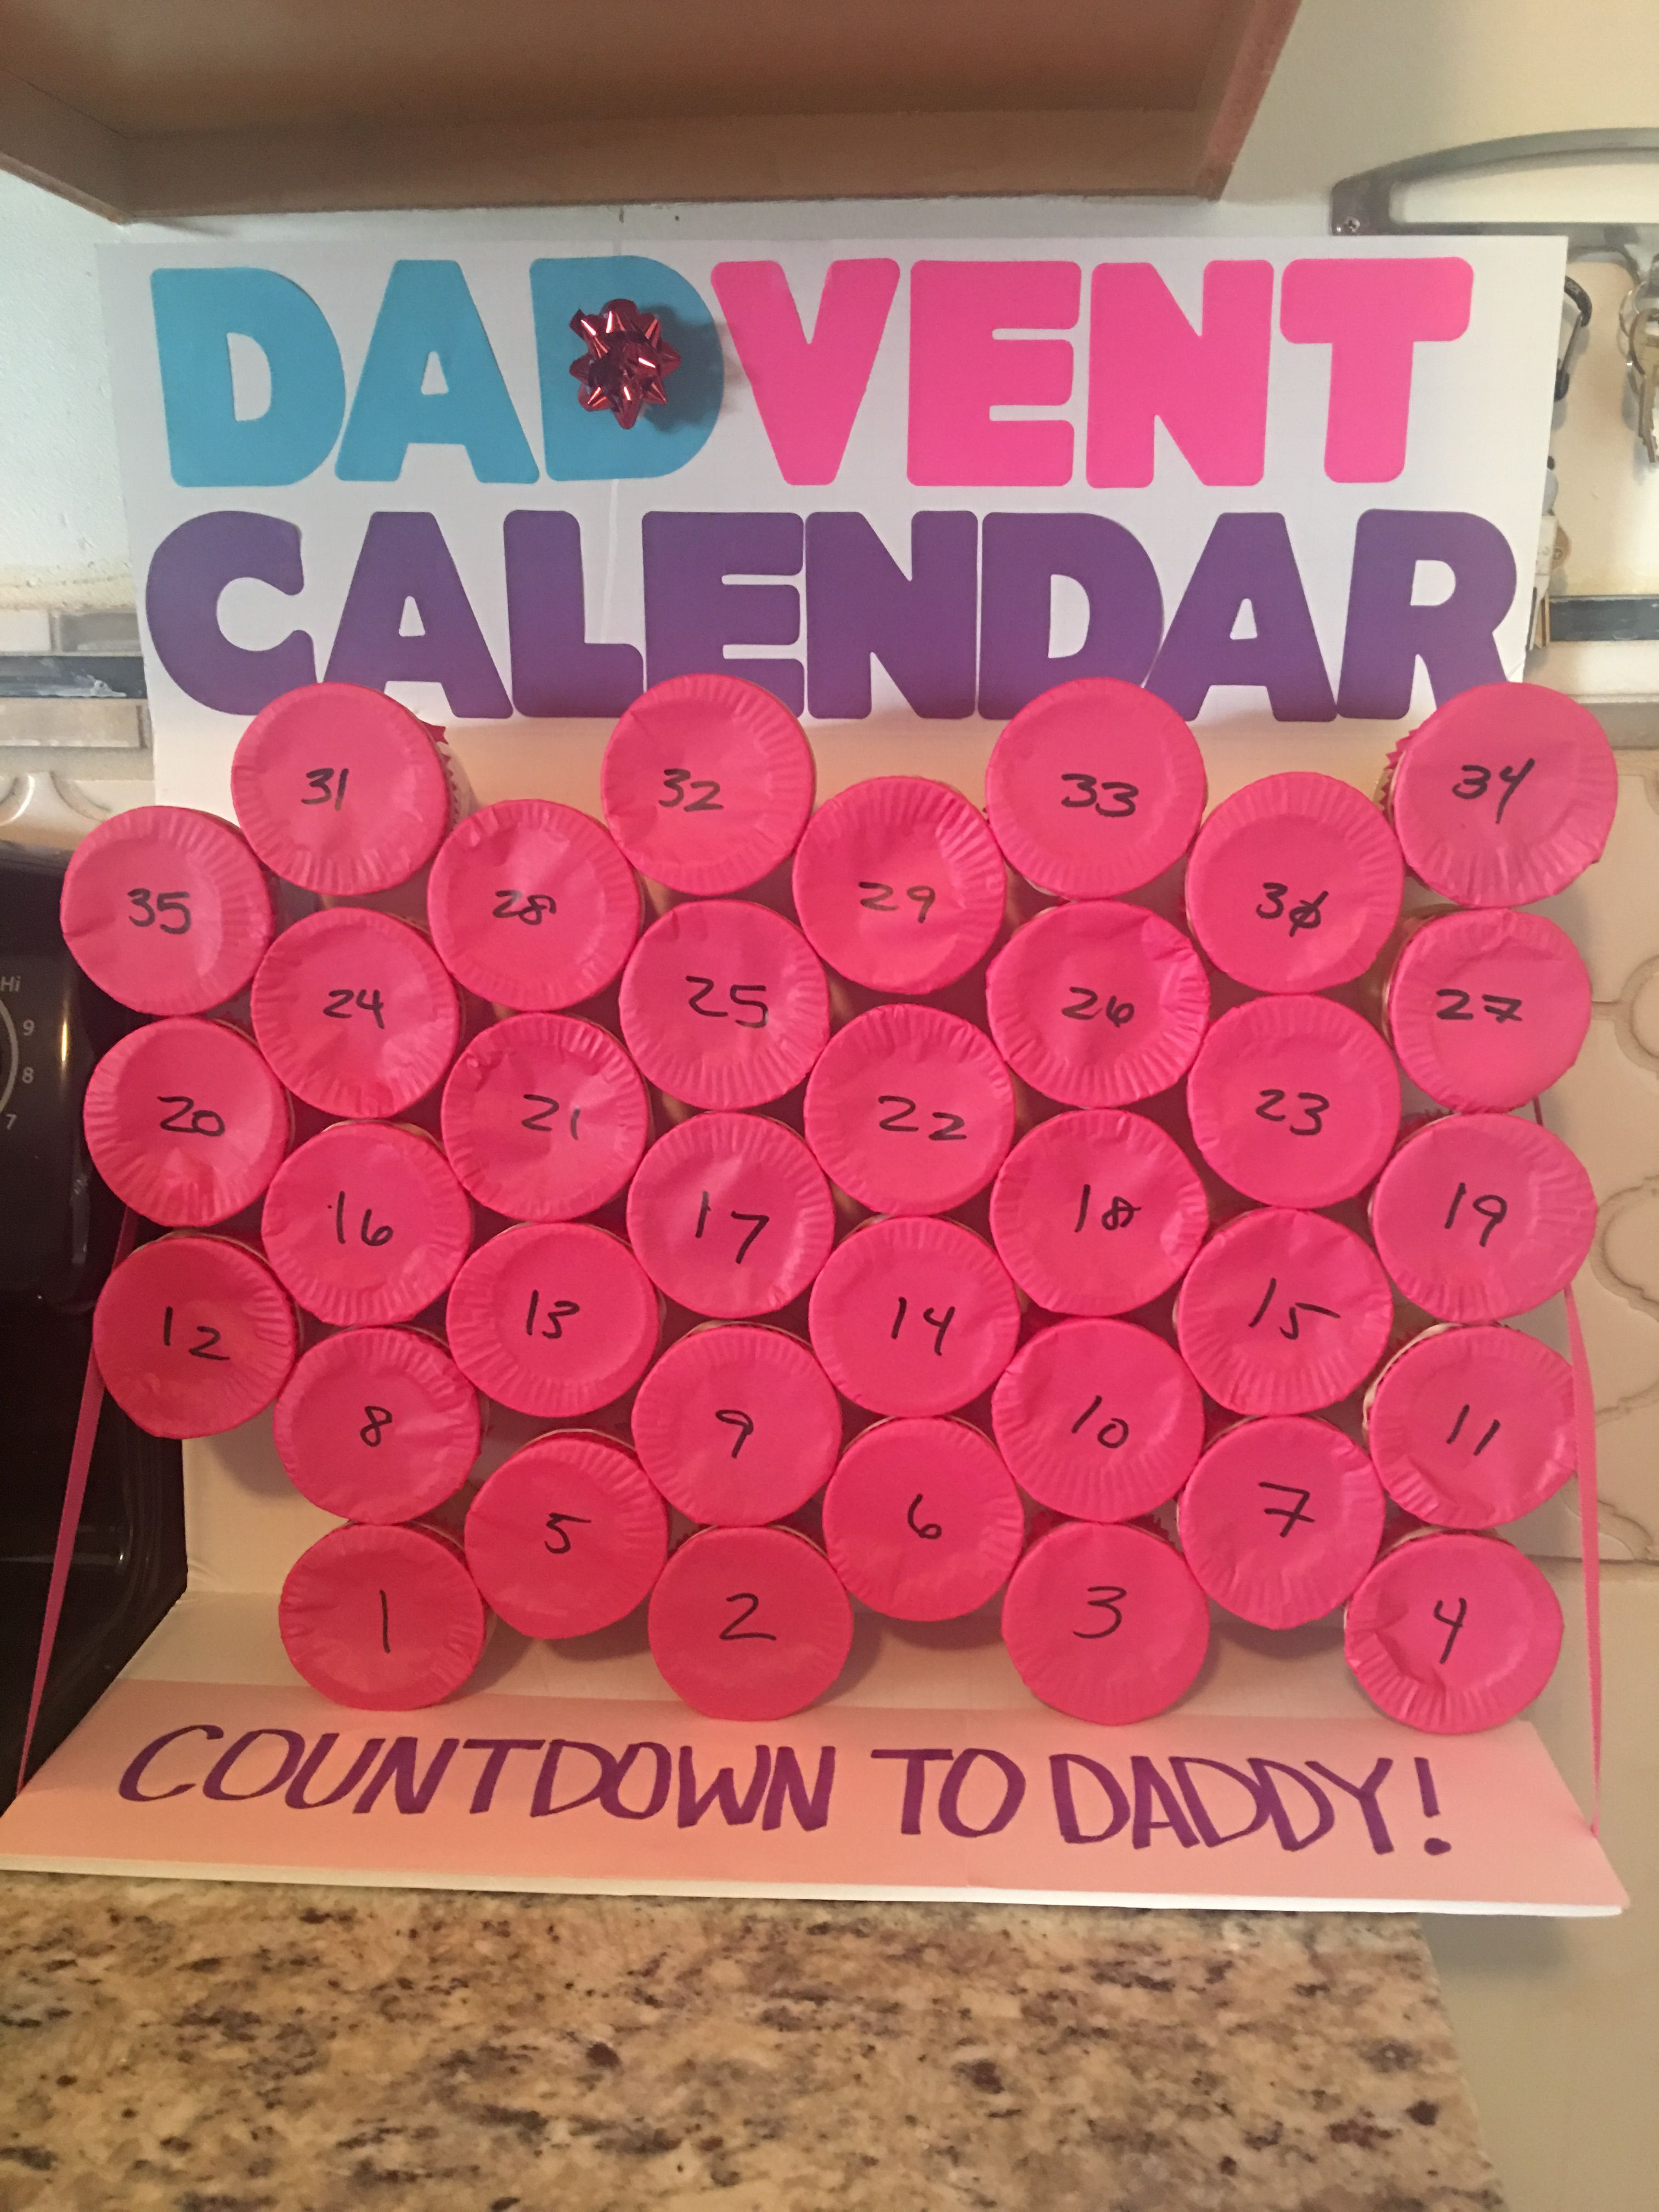 Countdown Calendar To Daddy Returning From Deployment. This with regard to Deployment Countdown Calendar